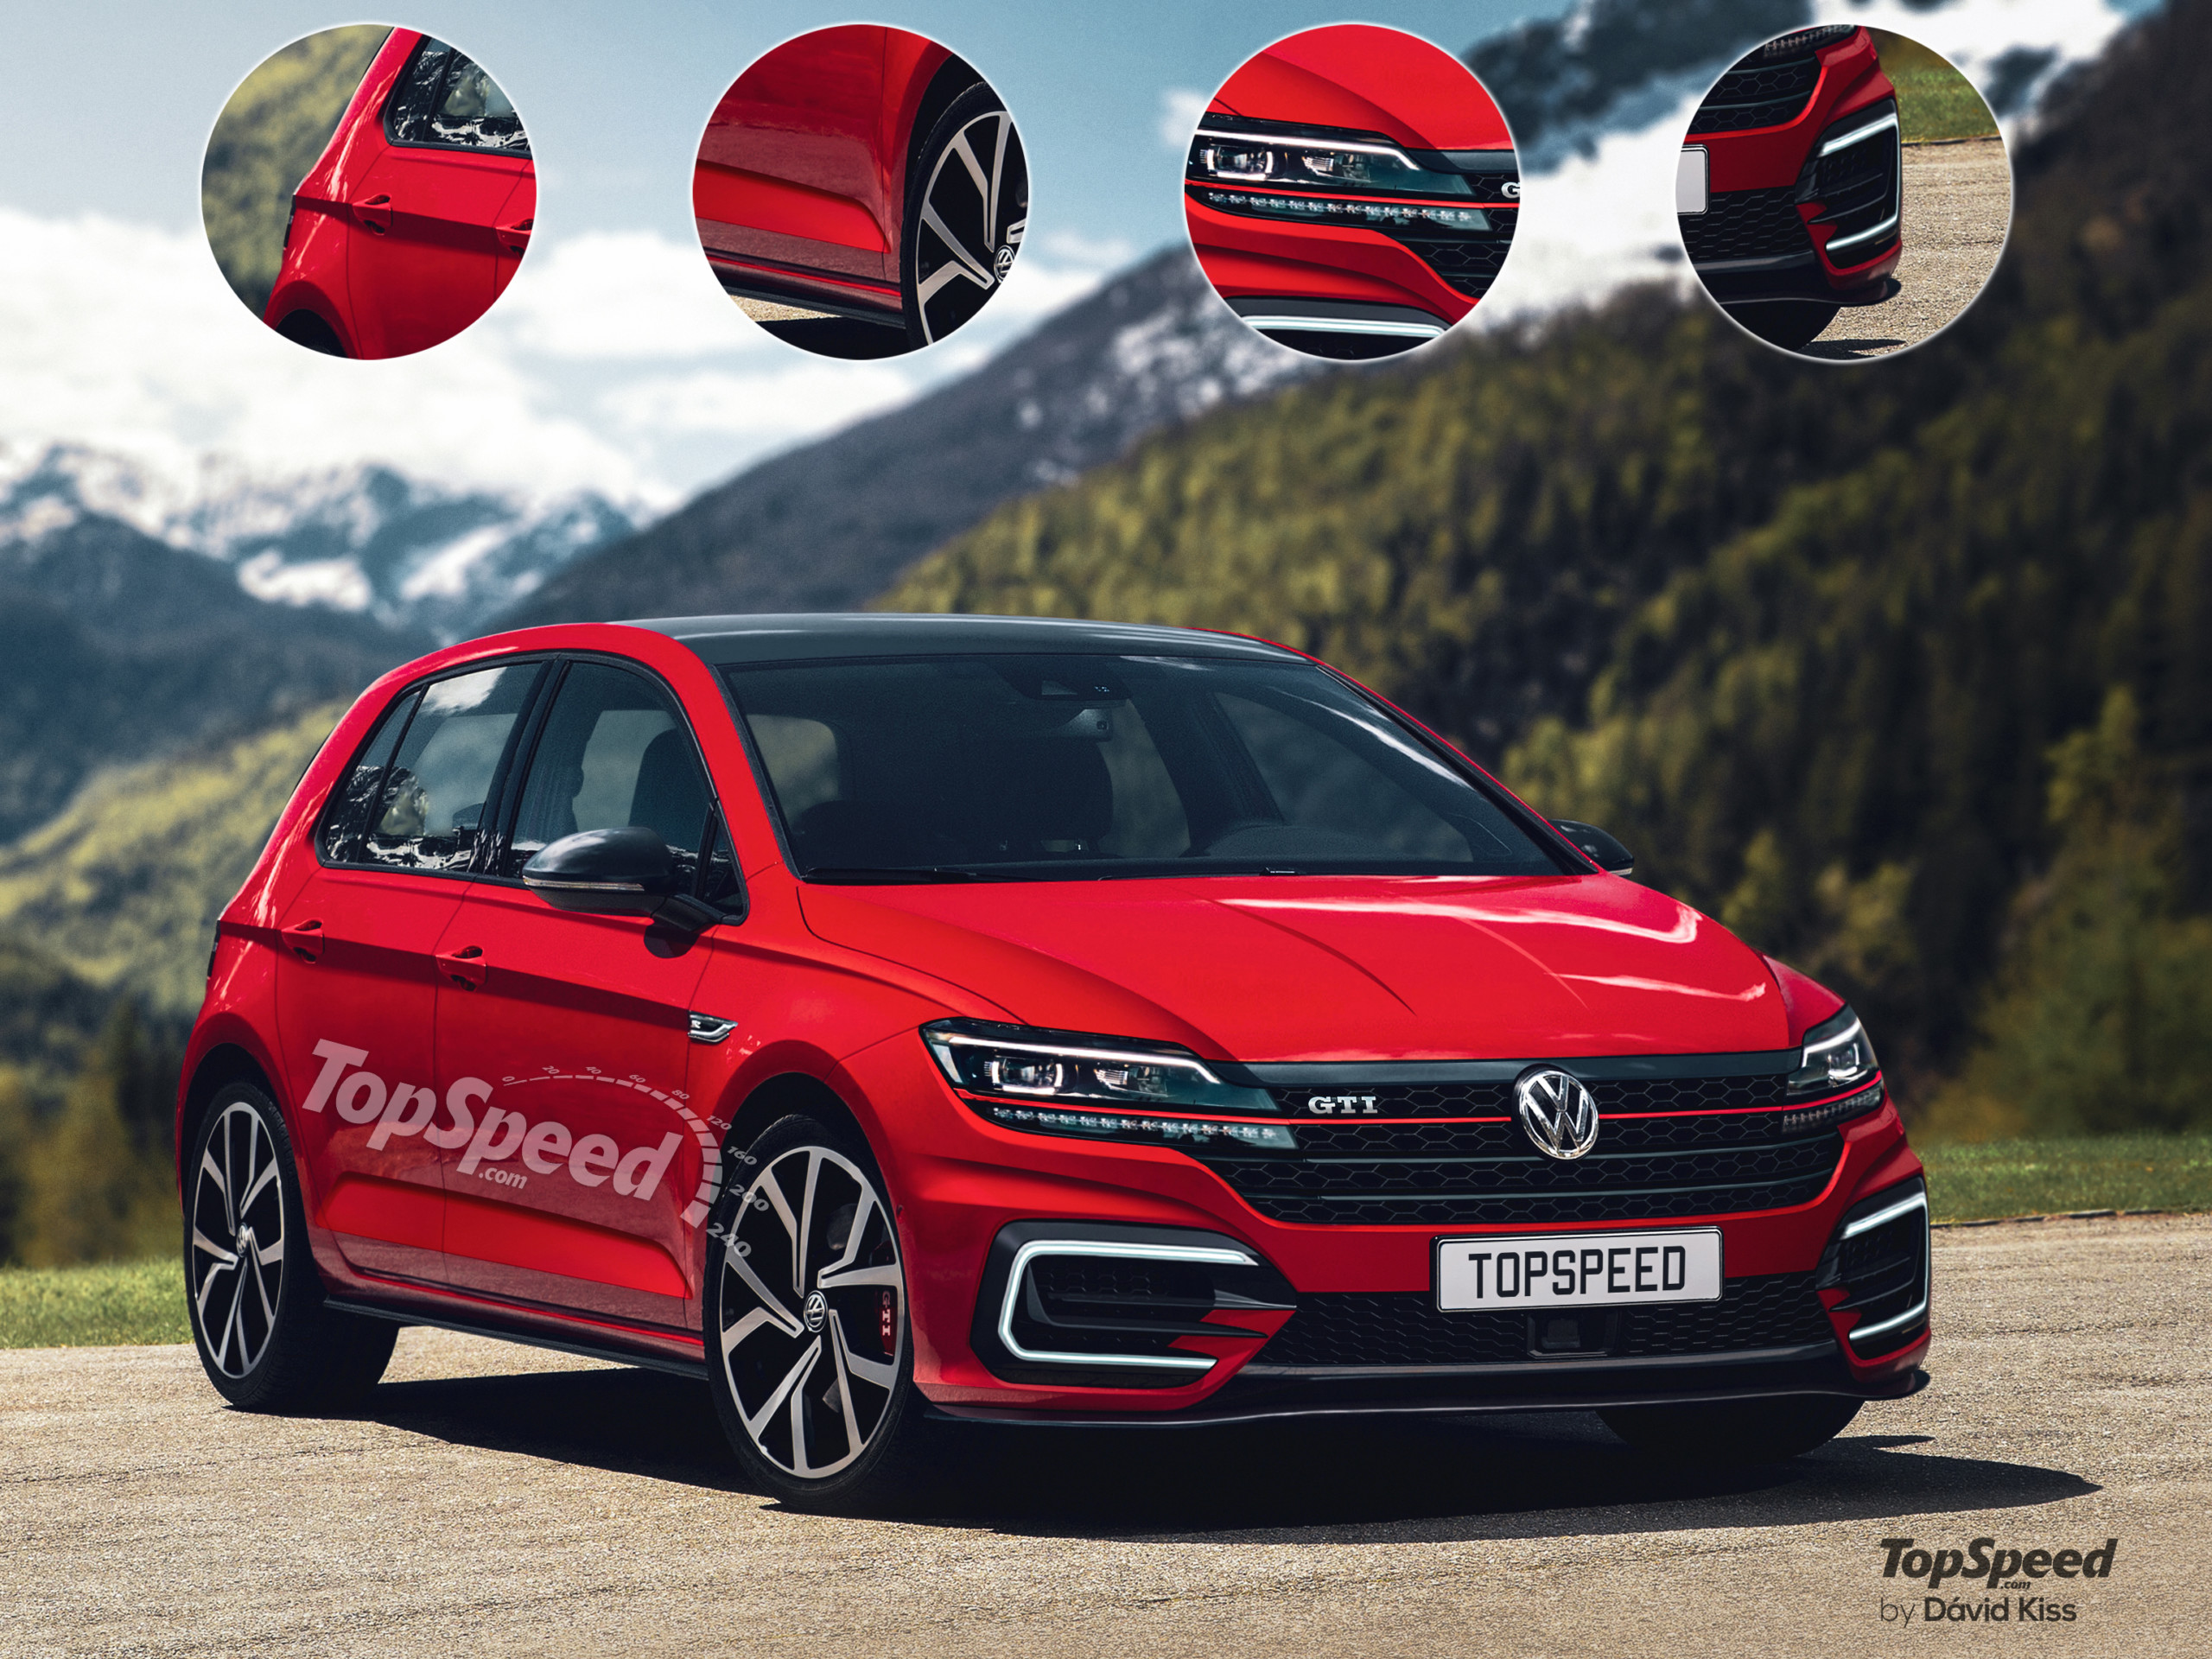 Volkswagen Golf Mk8 Gti Soy Shots And Speculative Review - 2022 Vw Gti Top Speed Configurations, Gas Mileage, Release Date